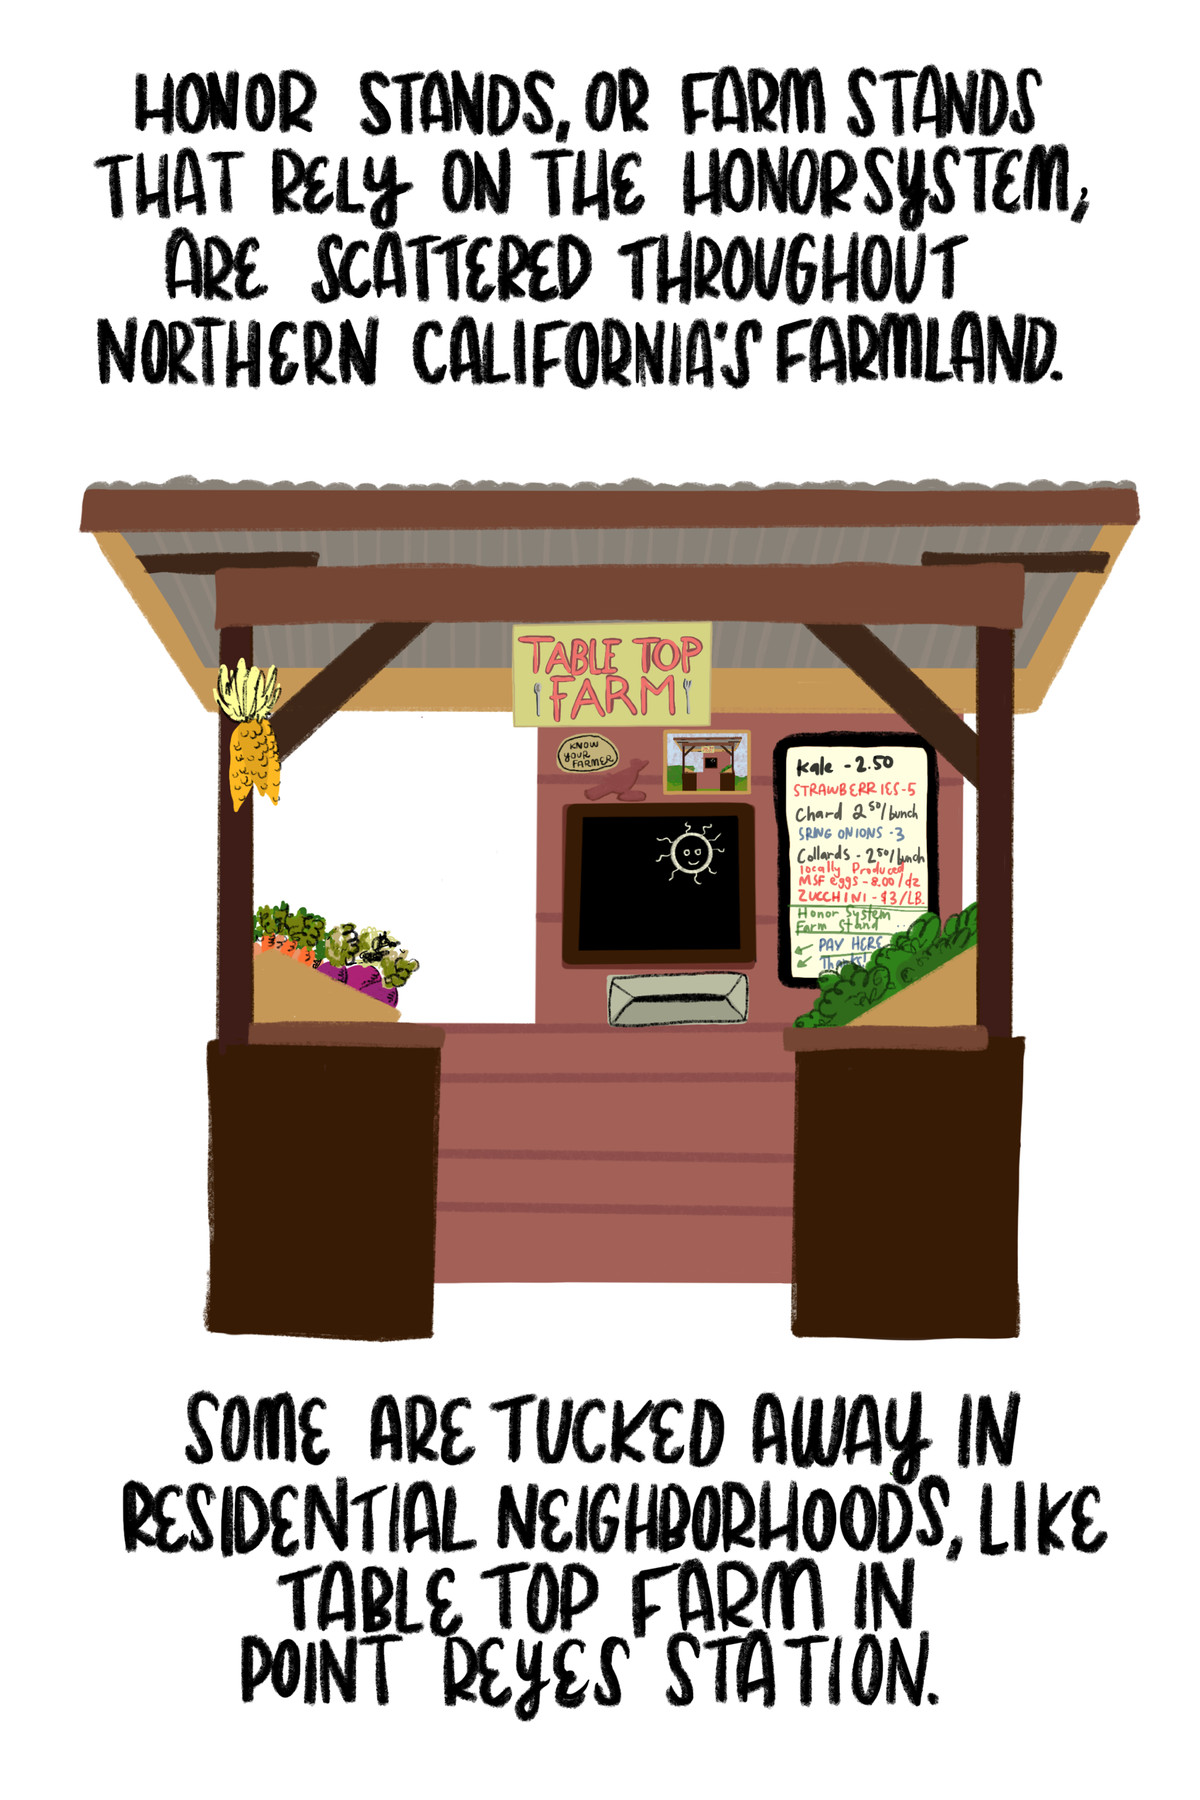 """""""Honor stands, or farm stands that rely on the honor system, are scattered throughout northern California's farmland. Some are tucked away in residential neighborhoods, like Table Top Farm in Point Reyes Station."""" [The illustration shows the farm stand with a sign advertising the produce for sale.]"""